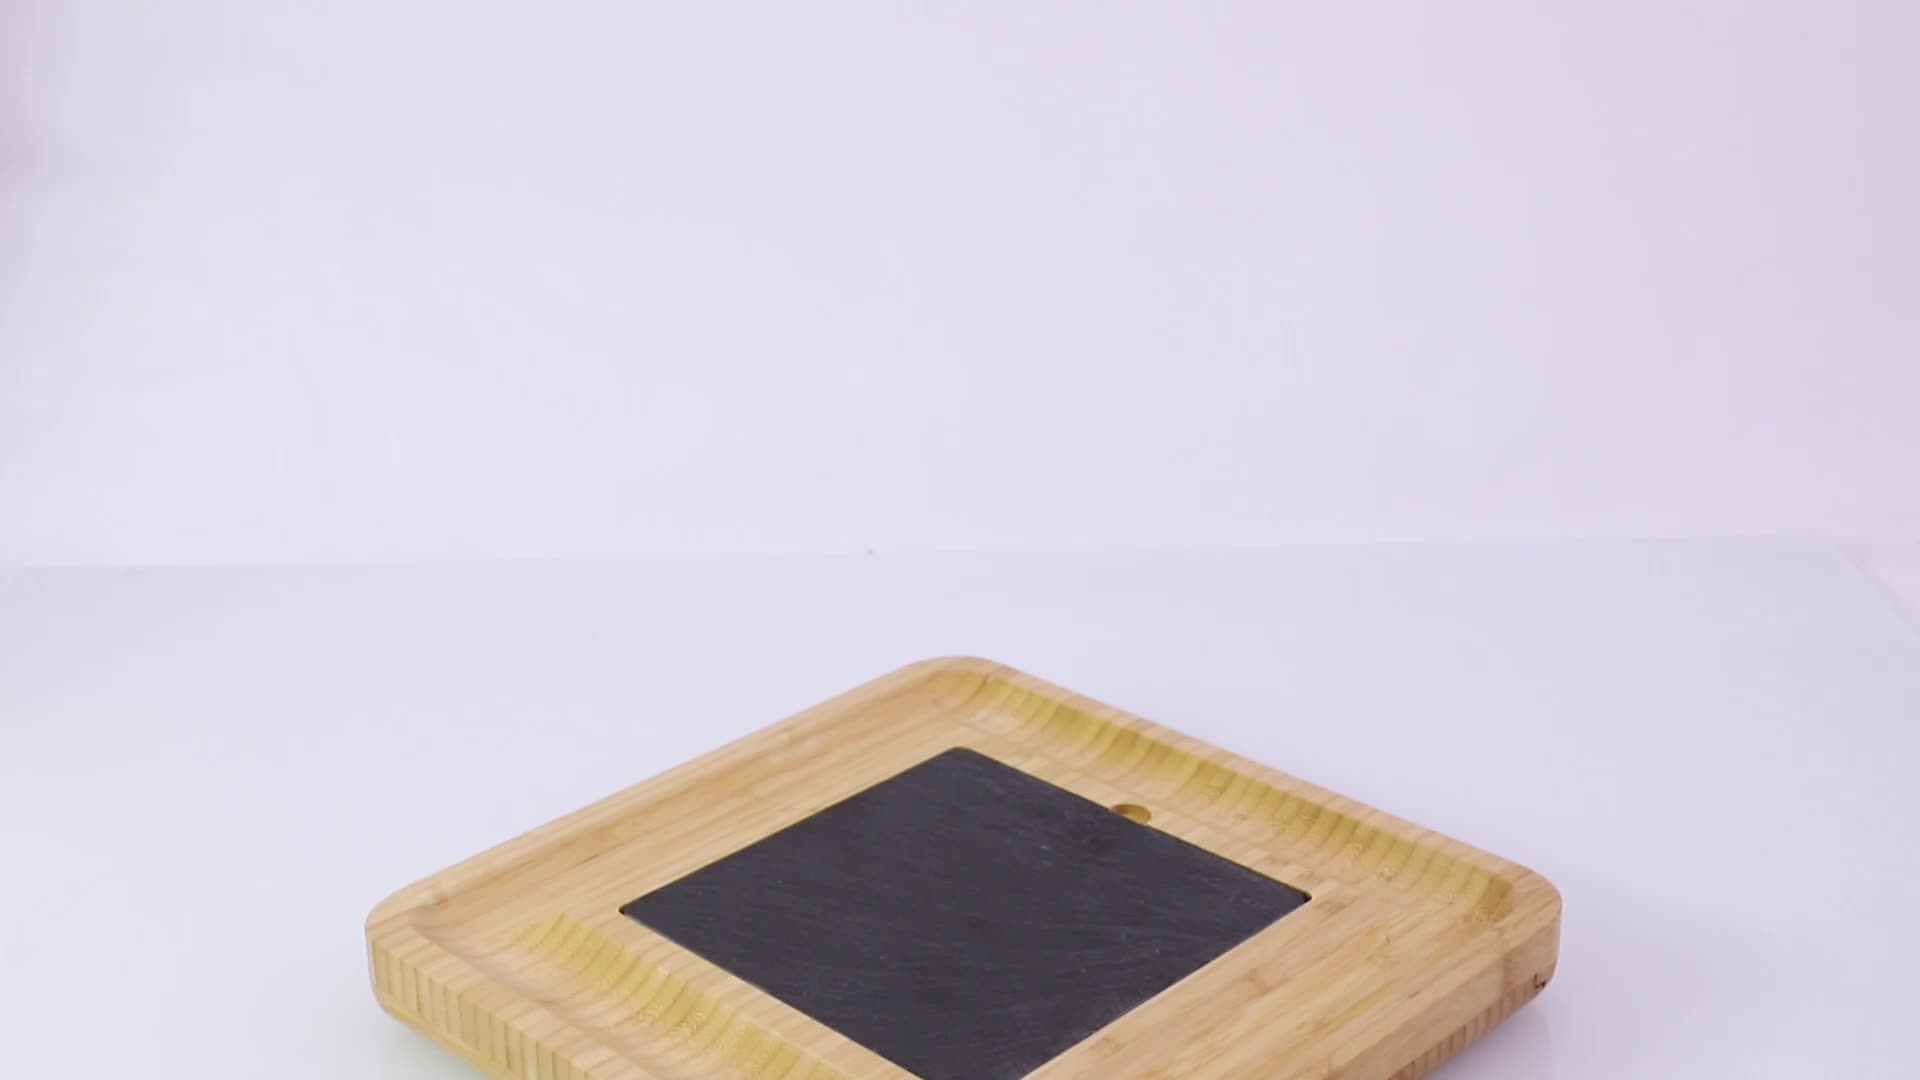 Bamboo Cheese Board With Cutlery Server Set And 2 Ceramic Bowls & 3 Slate Labels & 2 Chalk Markers